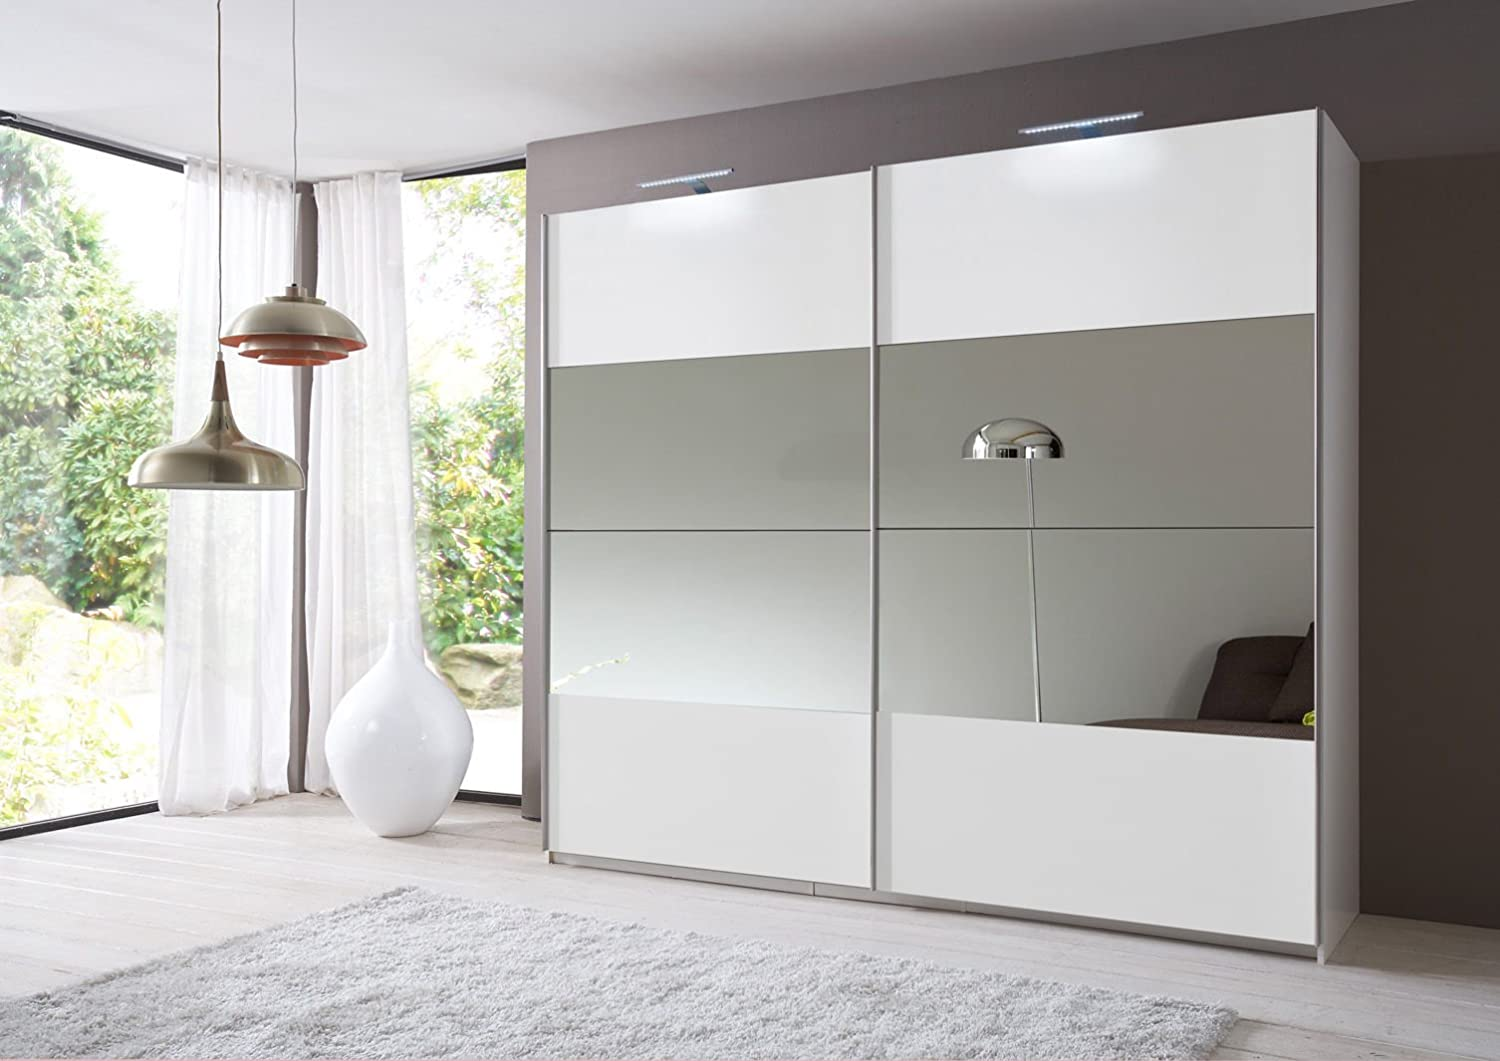 Eleganz Slumberhaus German Made 225cm Sliding Mirror Door Wardrobe 2